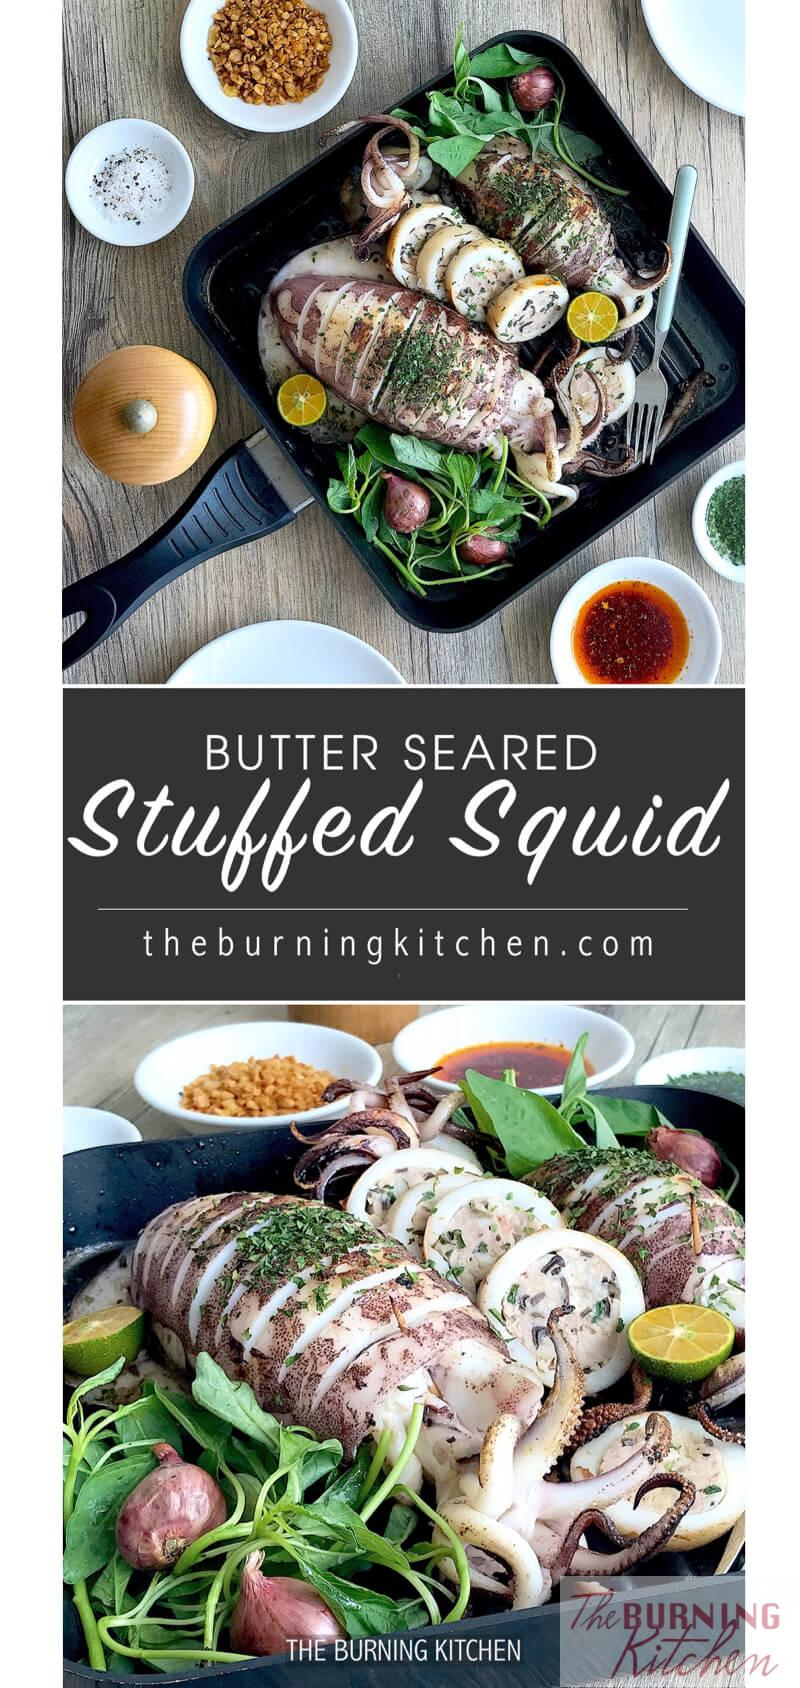 Steam-Grilled Stuffed Squid: The steam-grill method gives you the best of both worlds - the extra moisture and flavour infusion from steaming, and the smoky bbq flavours from grilling! This delicious squid dish is literally packed with surprises inside out!